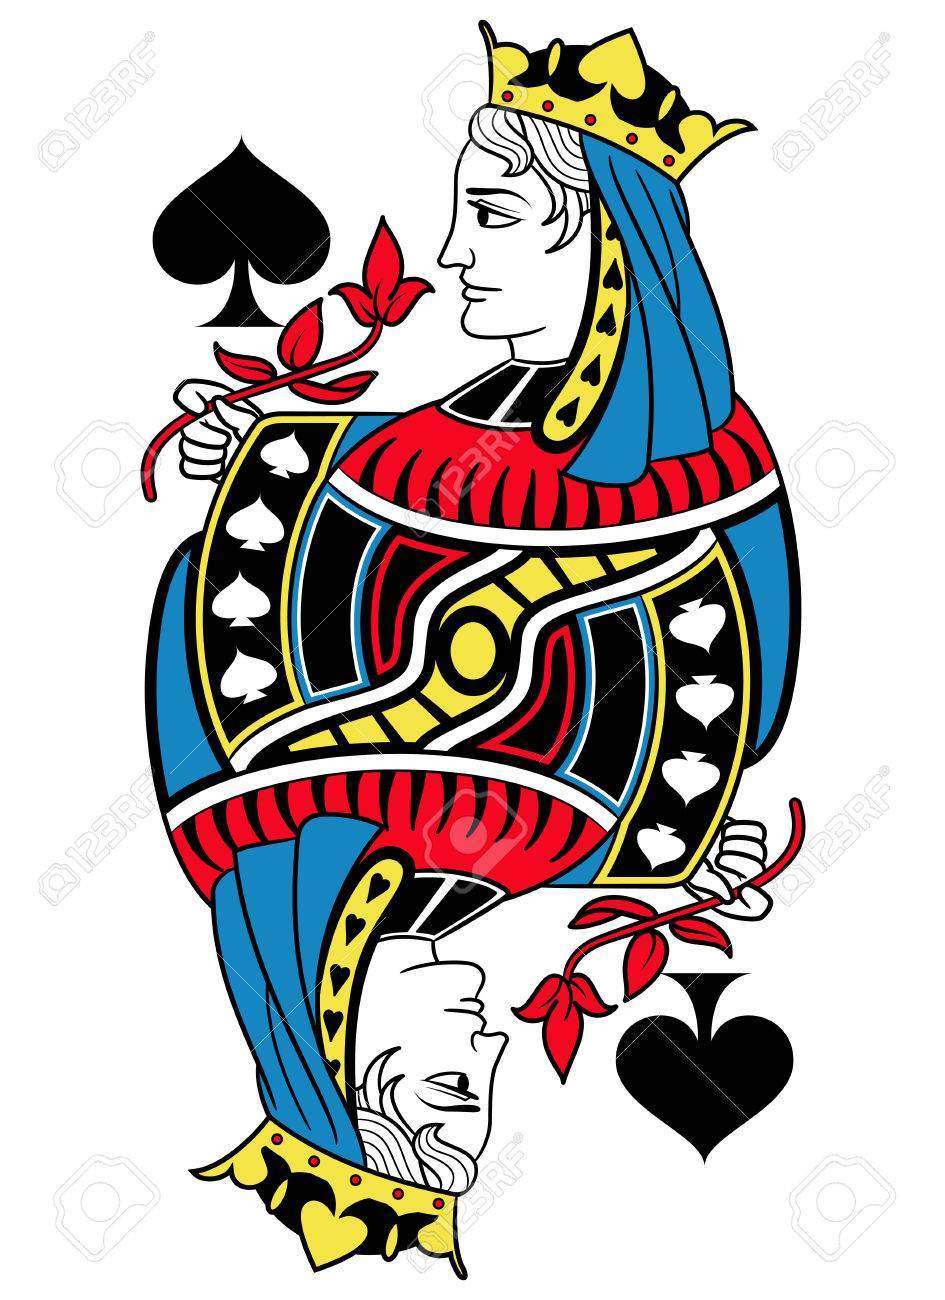 Queen Of Spades Without Card Frame Design Inspired By French Tradition Stock Vector